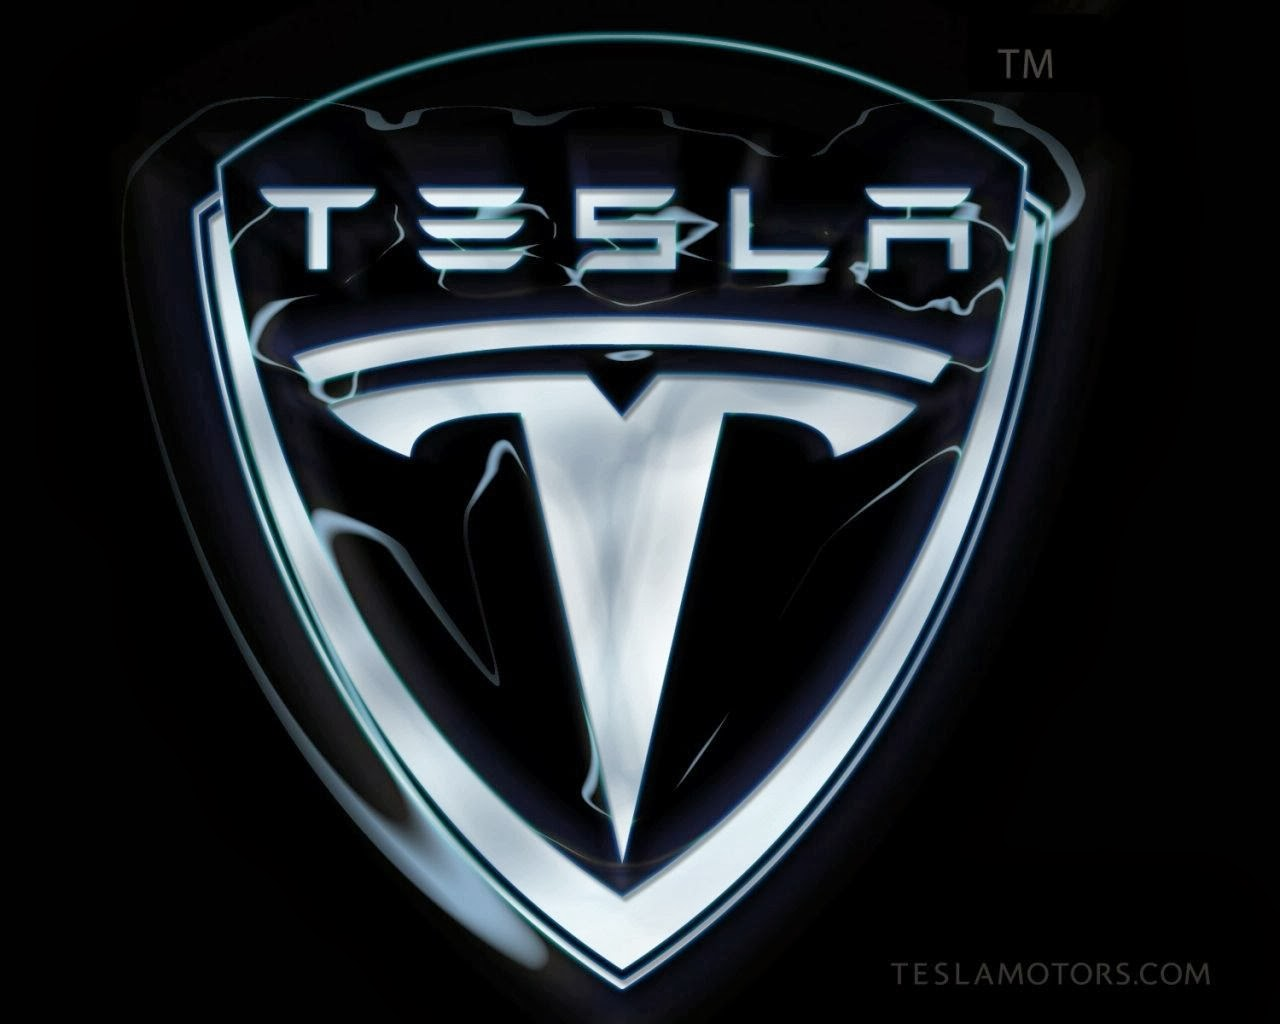 Dream Cars Tesla Roadster moreover Everything You Need To Know About Deep Sea Challenge besides Suzuki Make Lithium Ion Battery Packs India Toshiba Denso as well Evccon 2015 Day 4 as well Zelectric Motors Vw Beetle. on lithium battery packs for electric cars